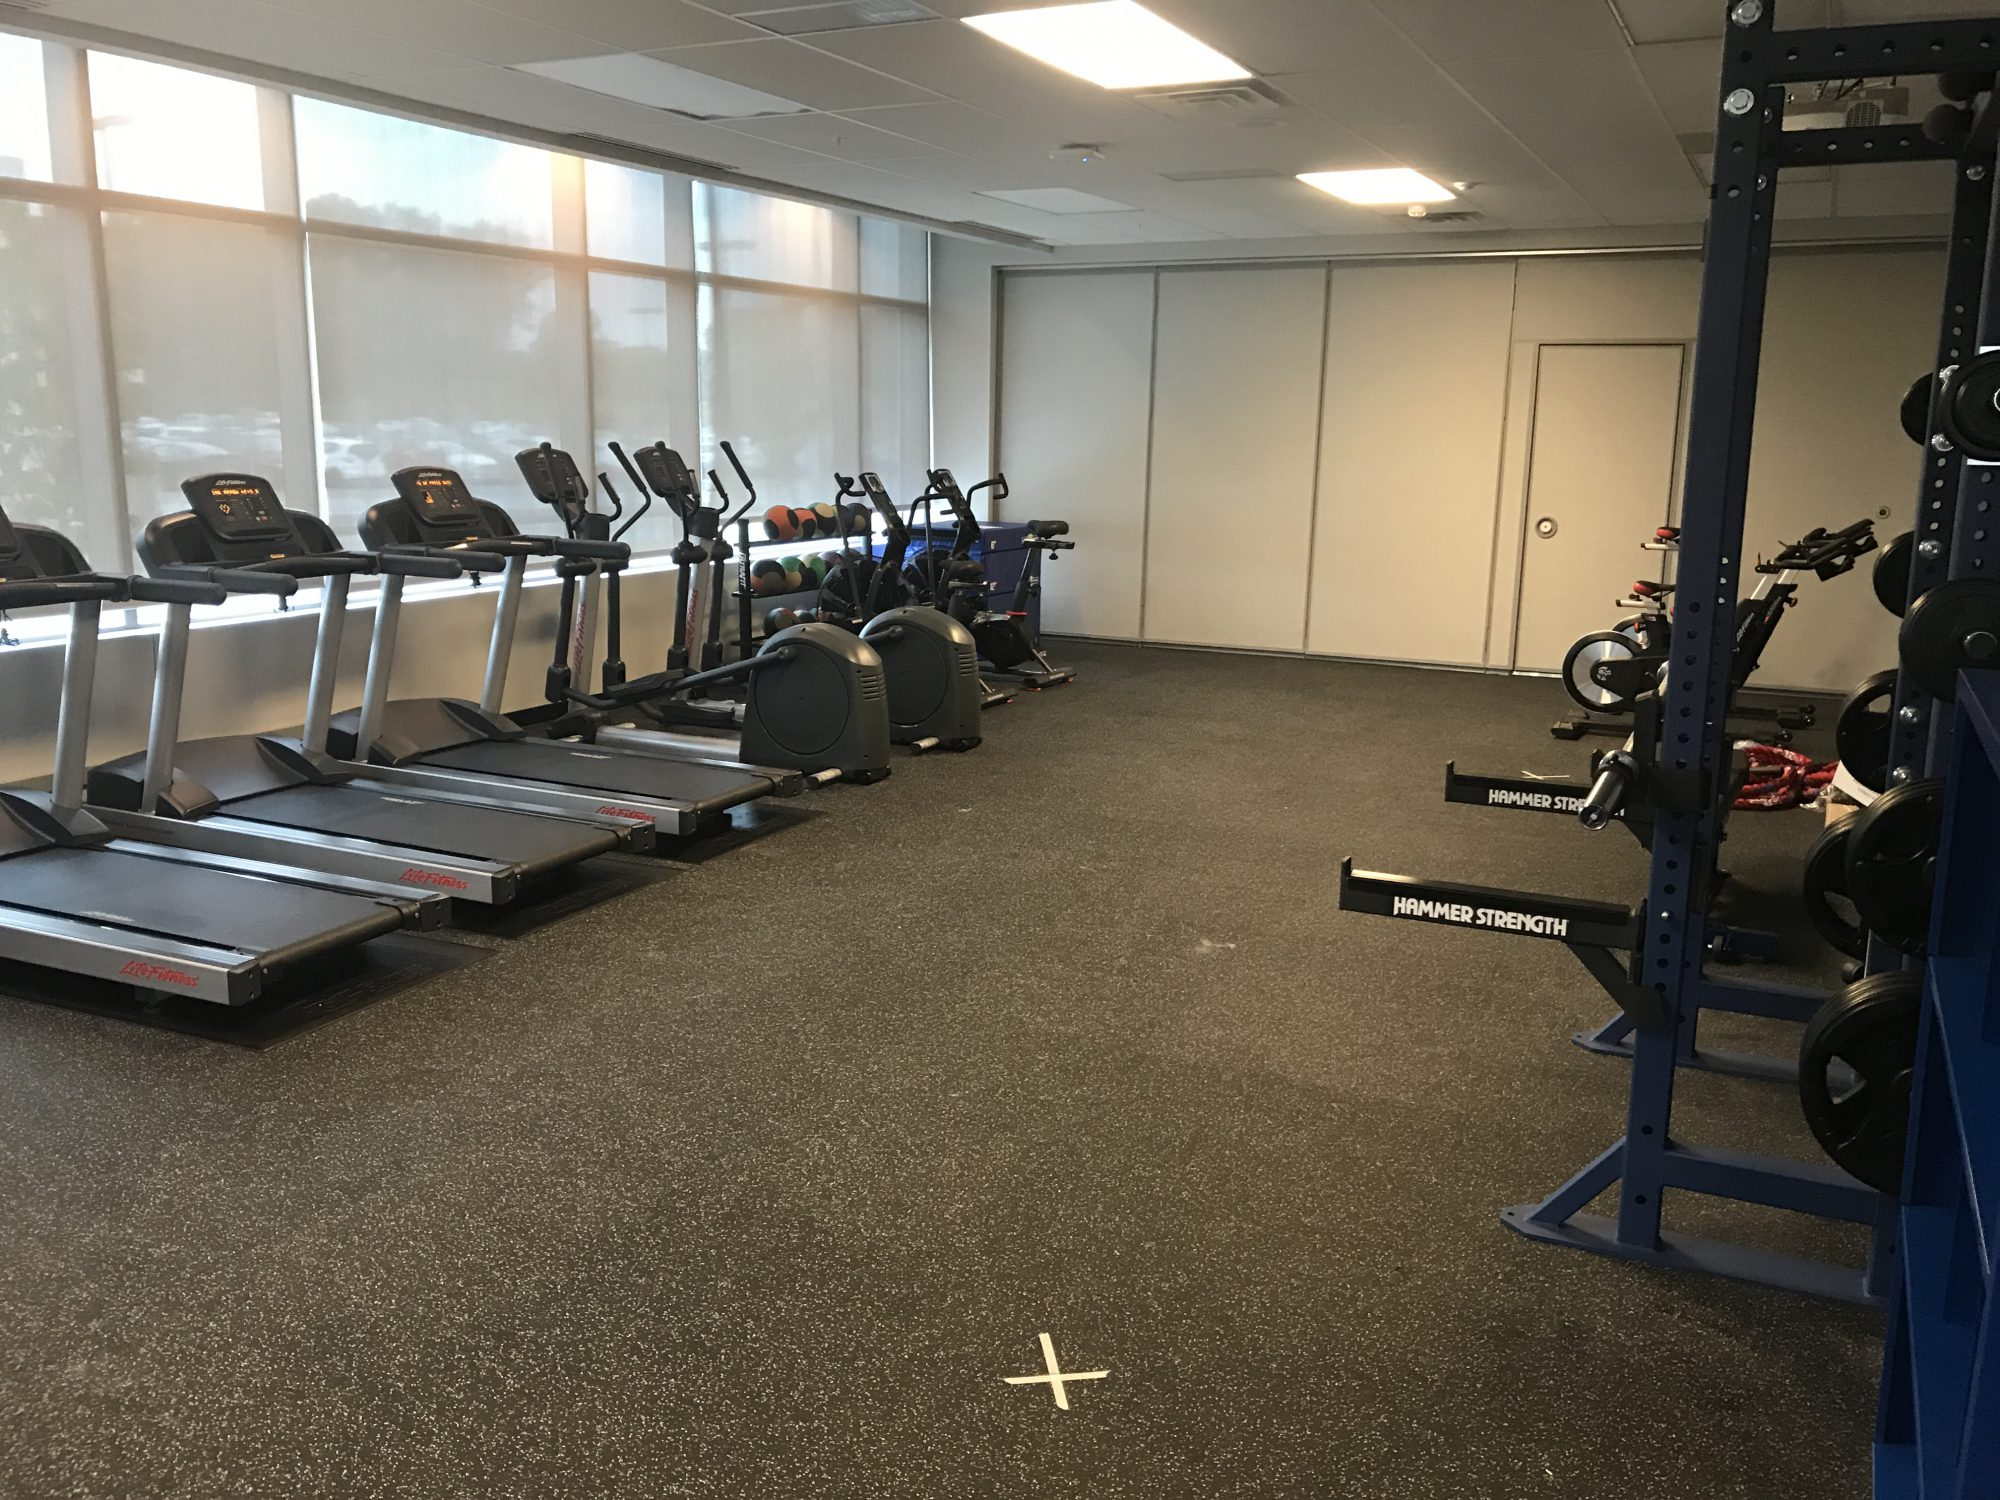 Photo of fitness center with treadmills, exercise bikes and free weights